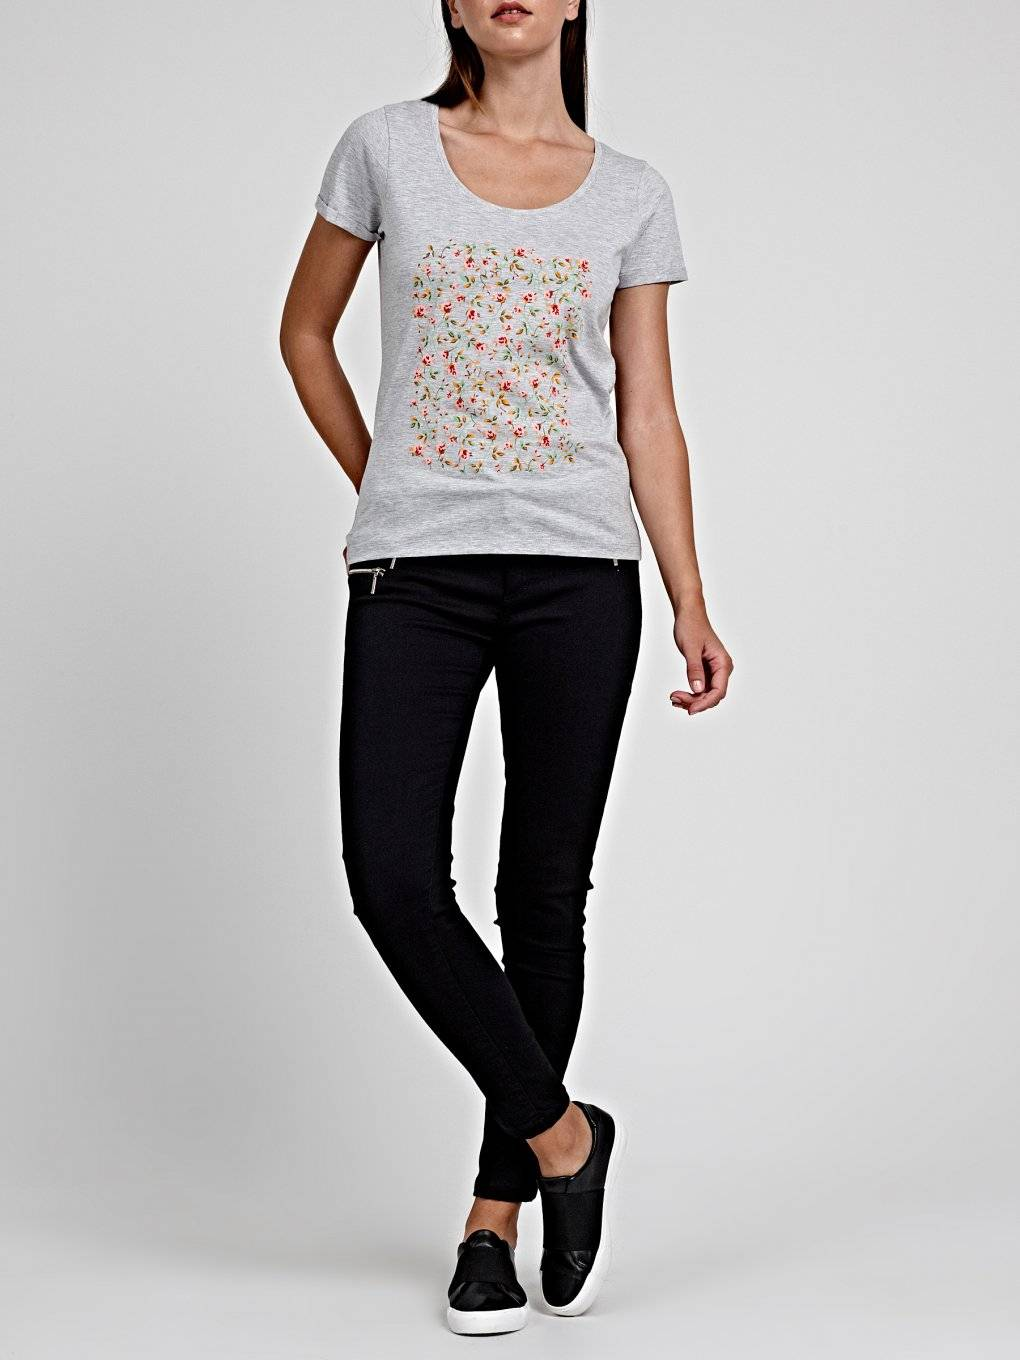 T-SHIRT WITH FLORAL PRINT